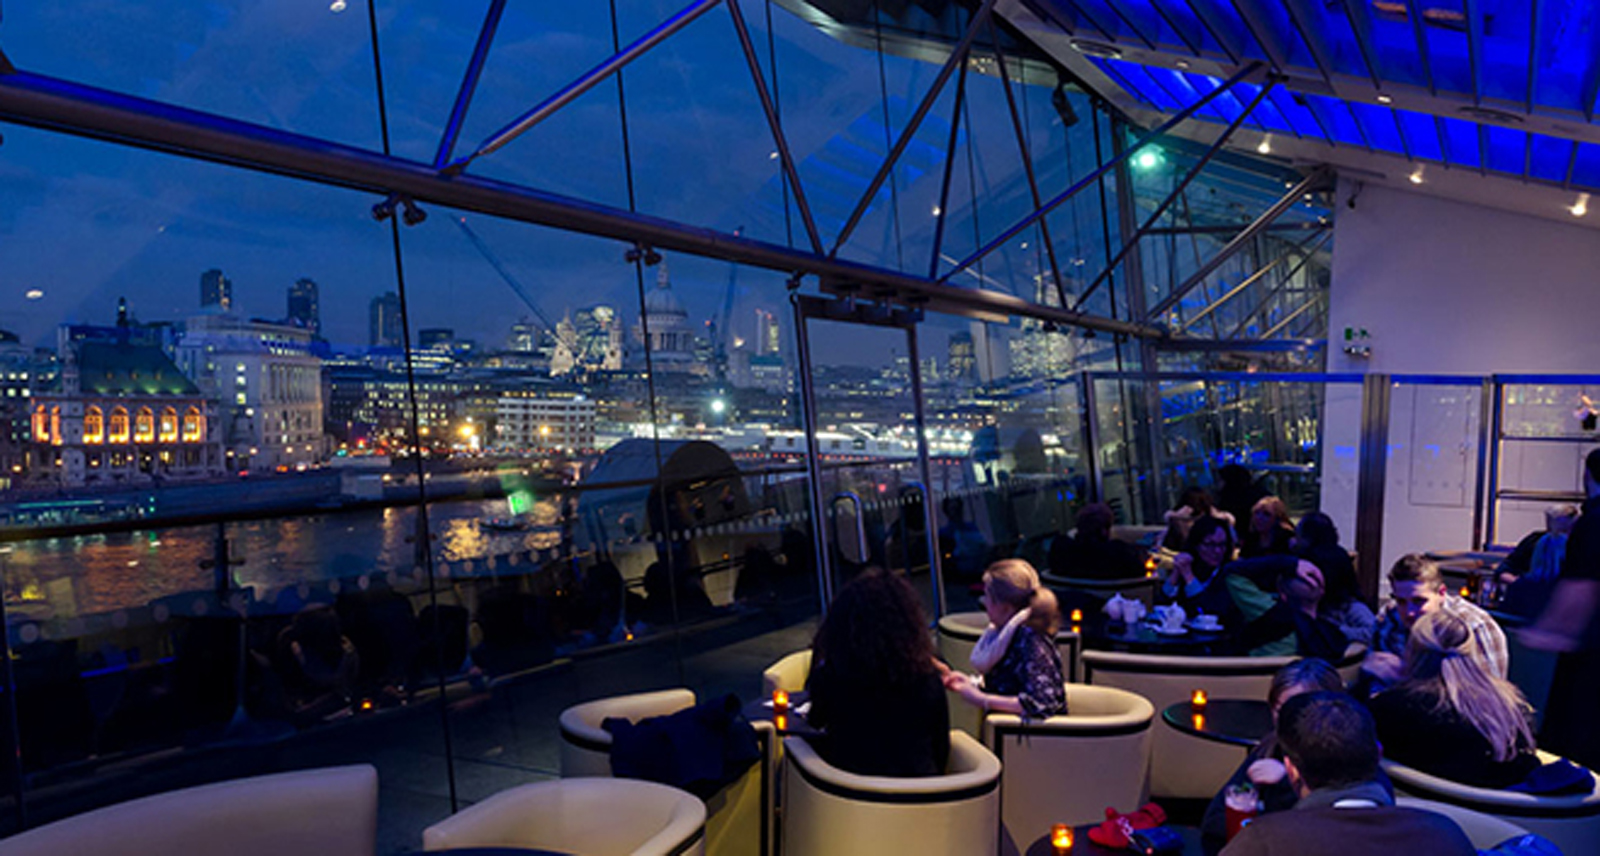 The view from OXO Tower Brasserie. London. England